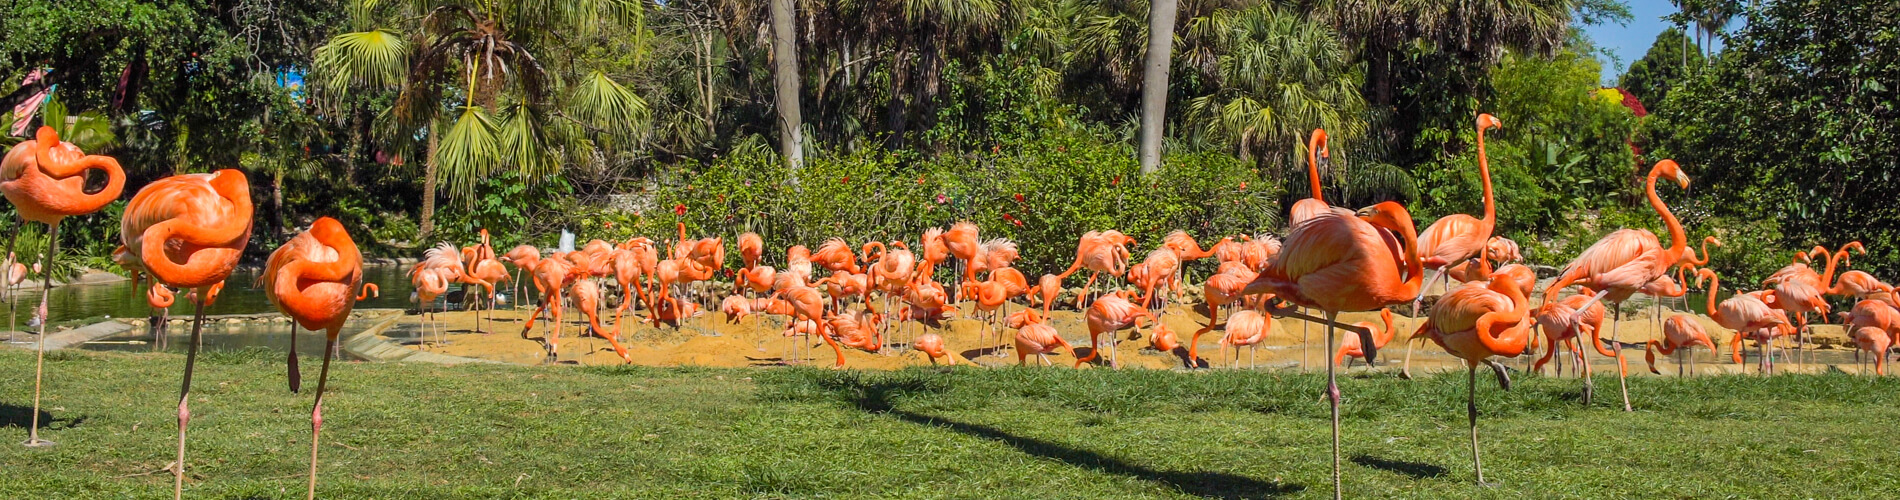 Flamingos and Other Birds at Busch Gardens Tampa Bay